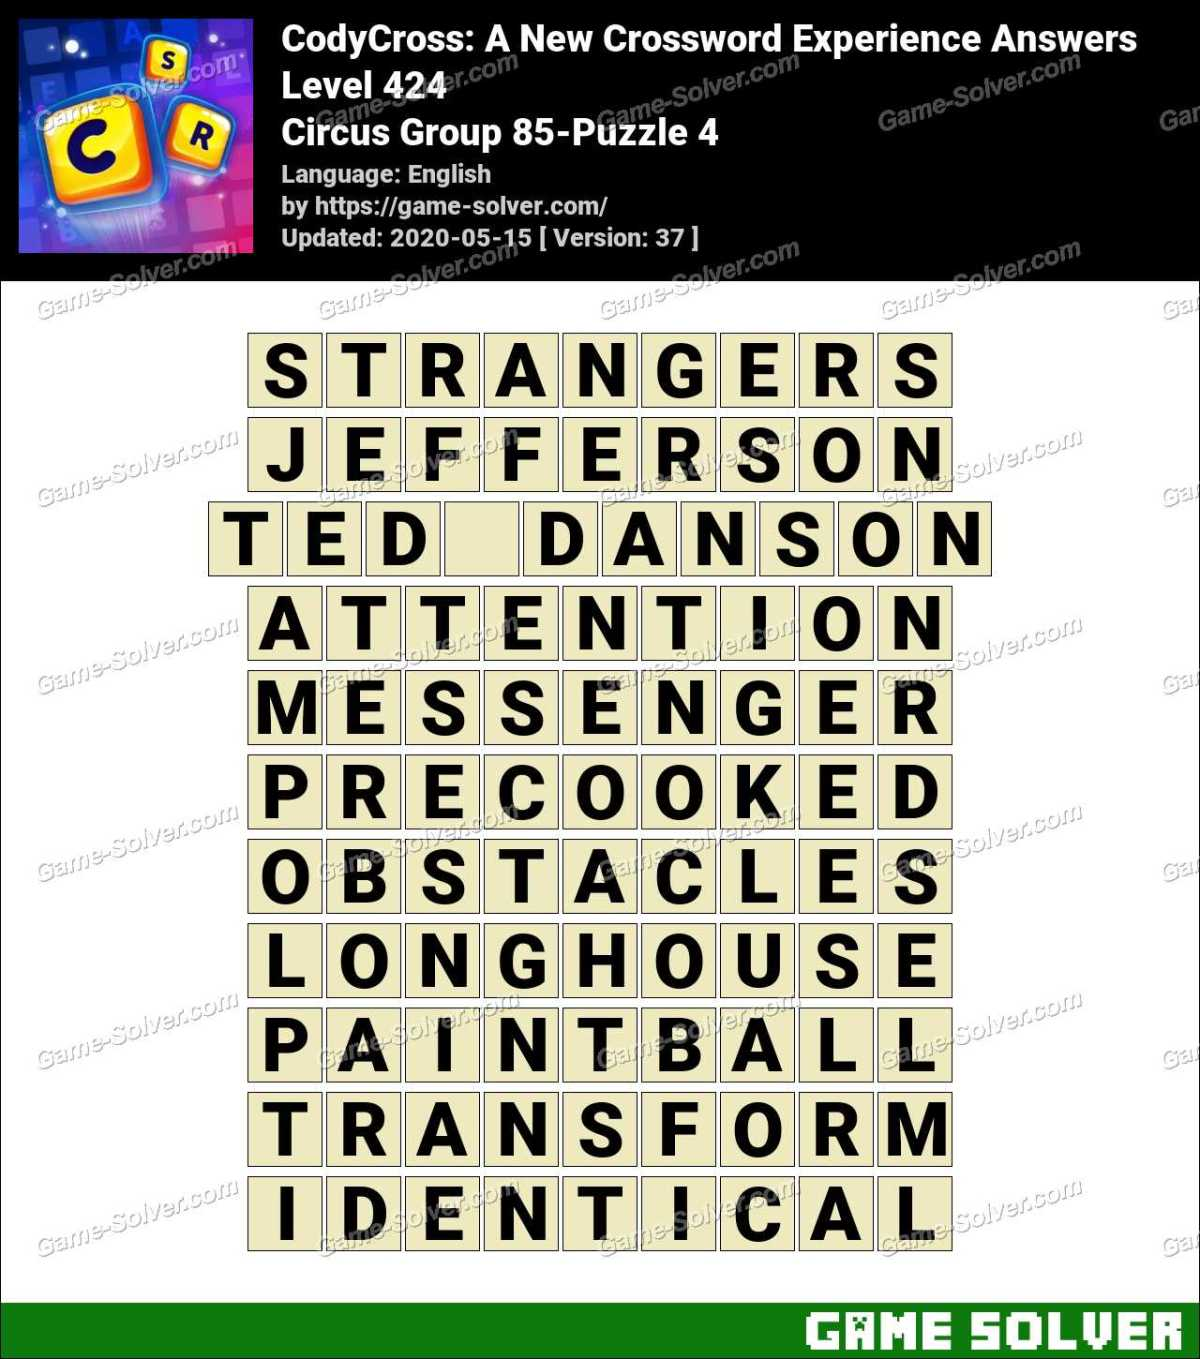 CodyCross Circus Group 85-Puzzle 4 Answers